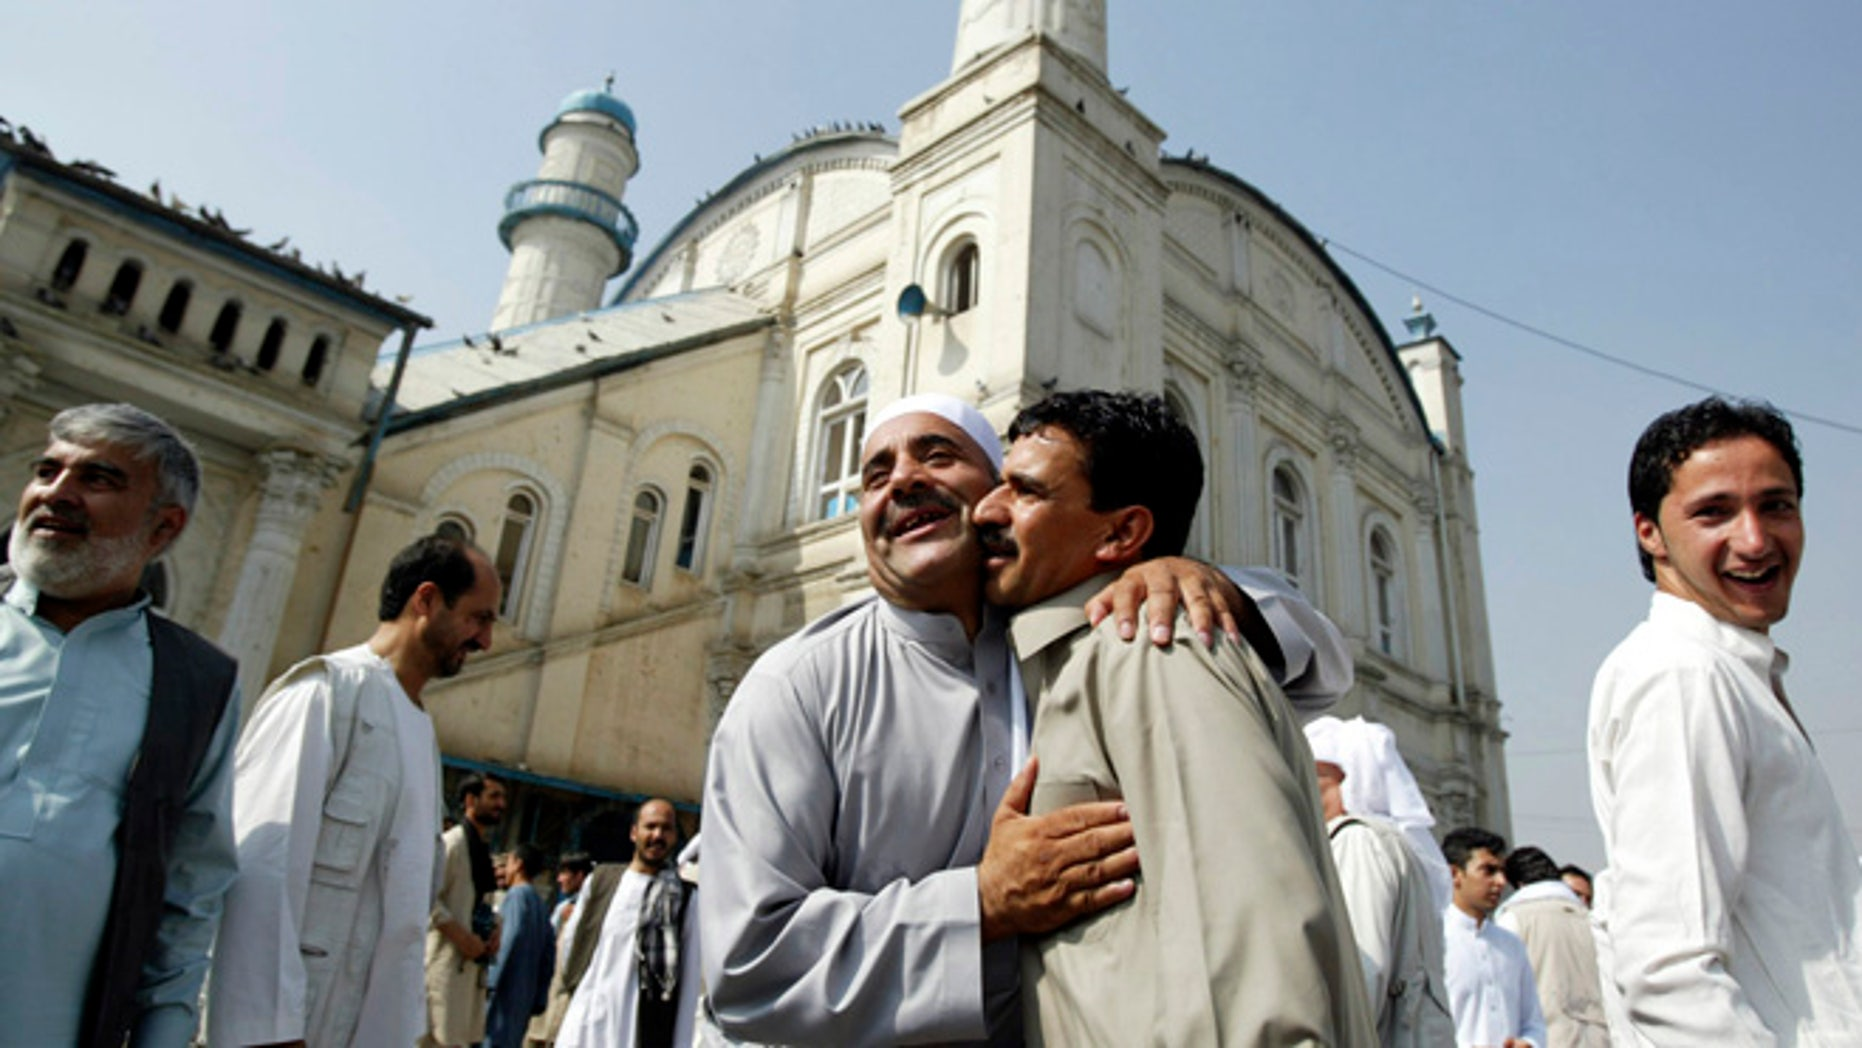 Aug. 8, 2013: Afghans celebrate the Eid al Adha each other after offering Eid al Adha's prayers outside Shah-e-Dushamshera mosque in Kabul, Afghanistan.